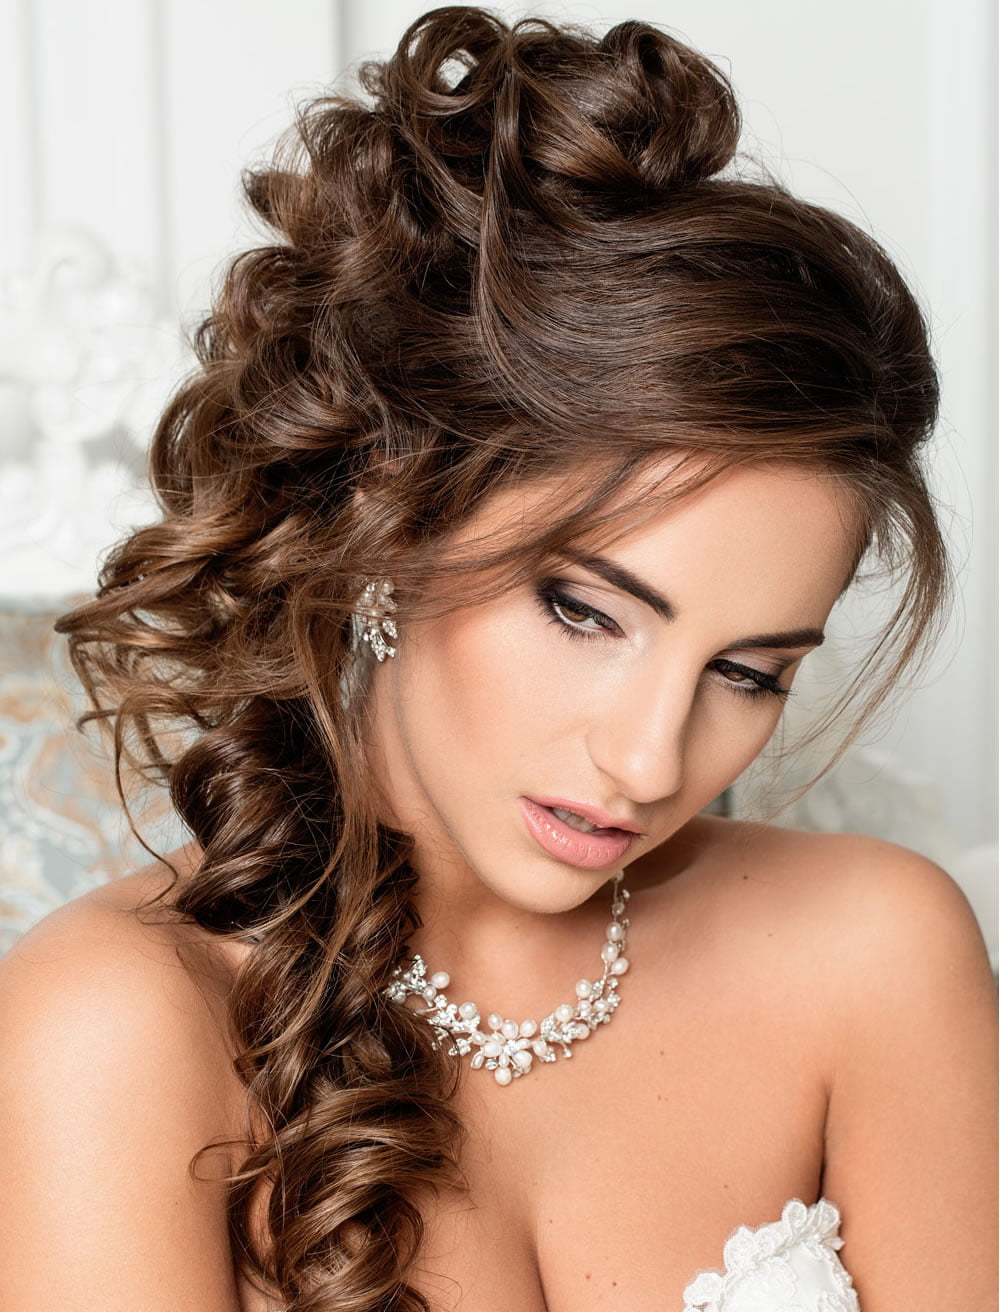 Very Stylish Wedding Hairstyles for Long Hair 20182019  HAIRSTYLES